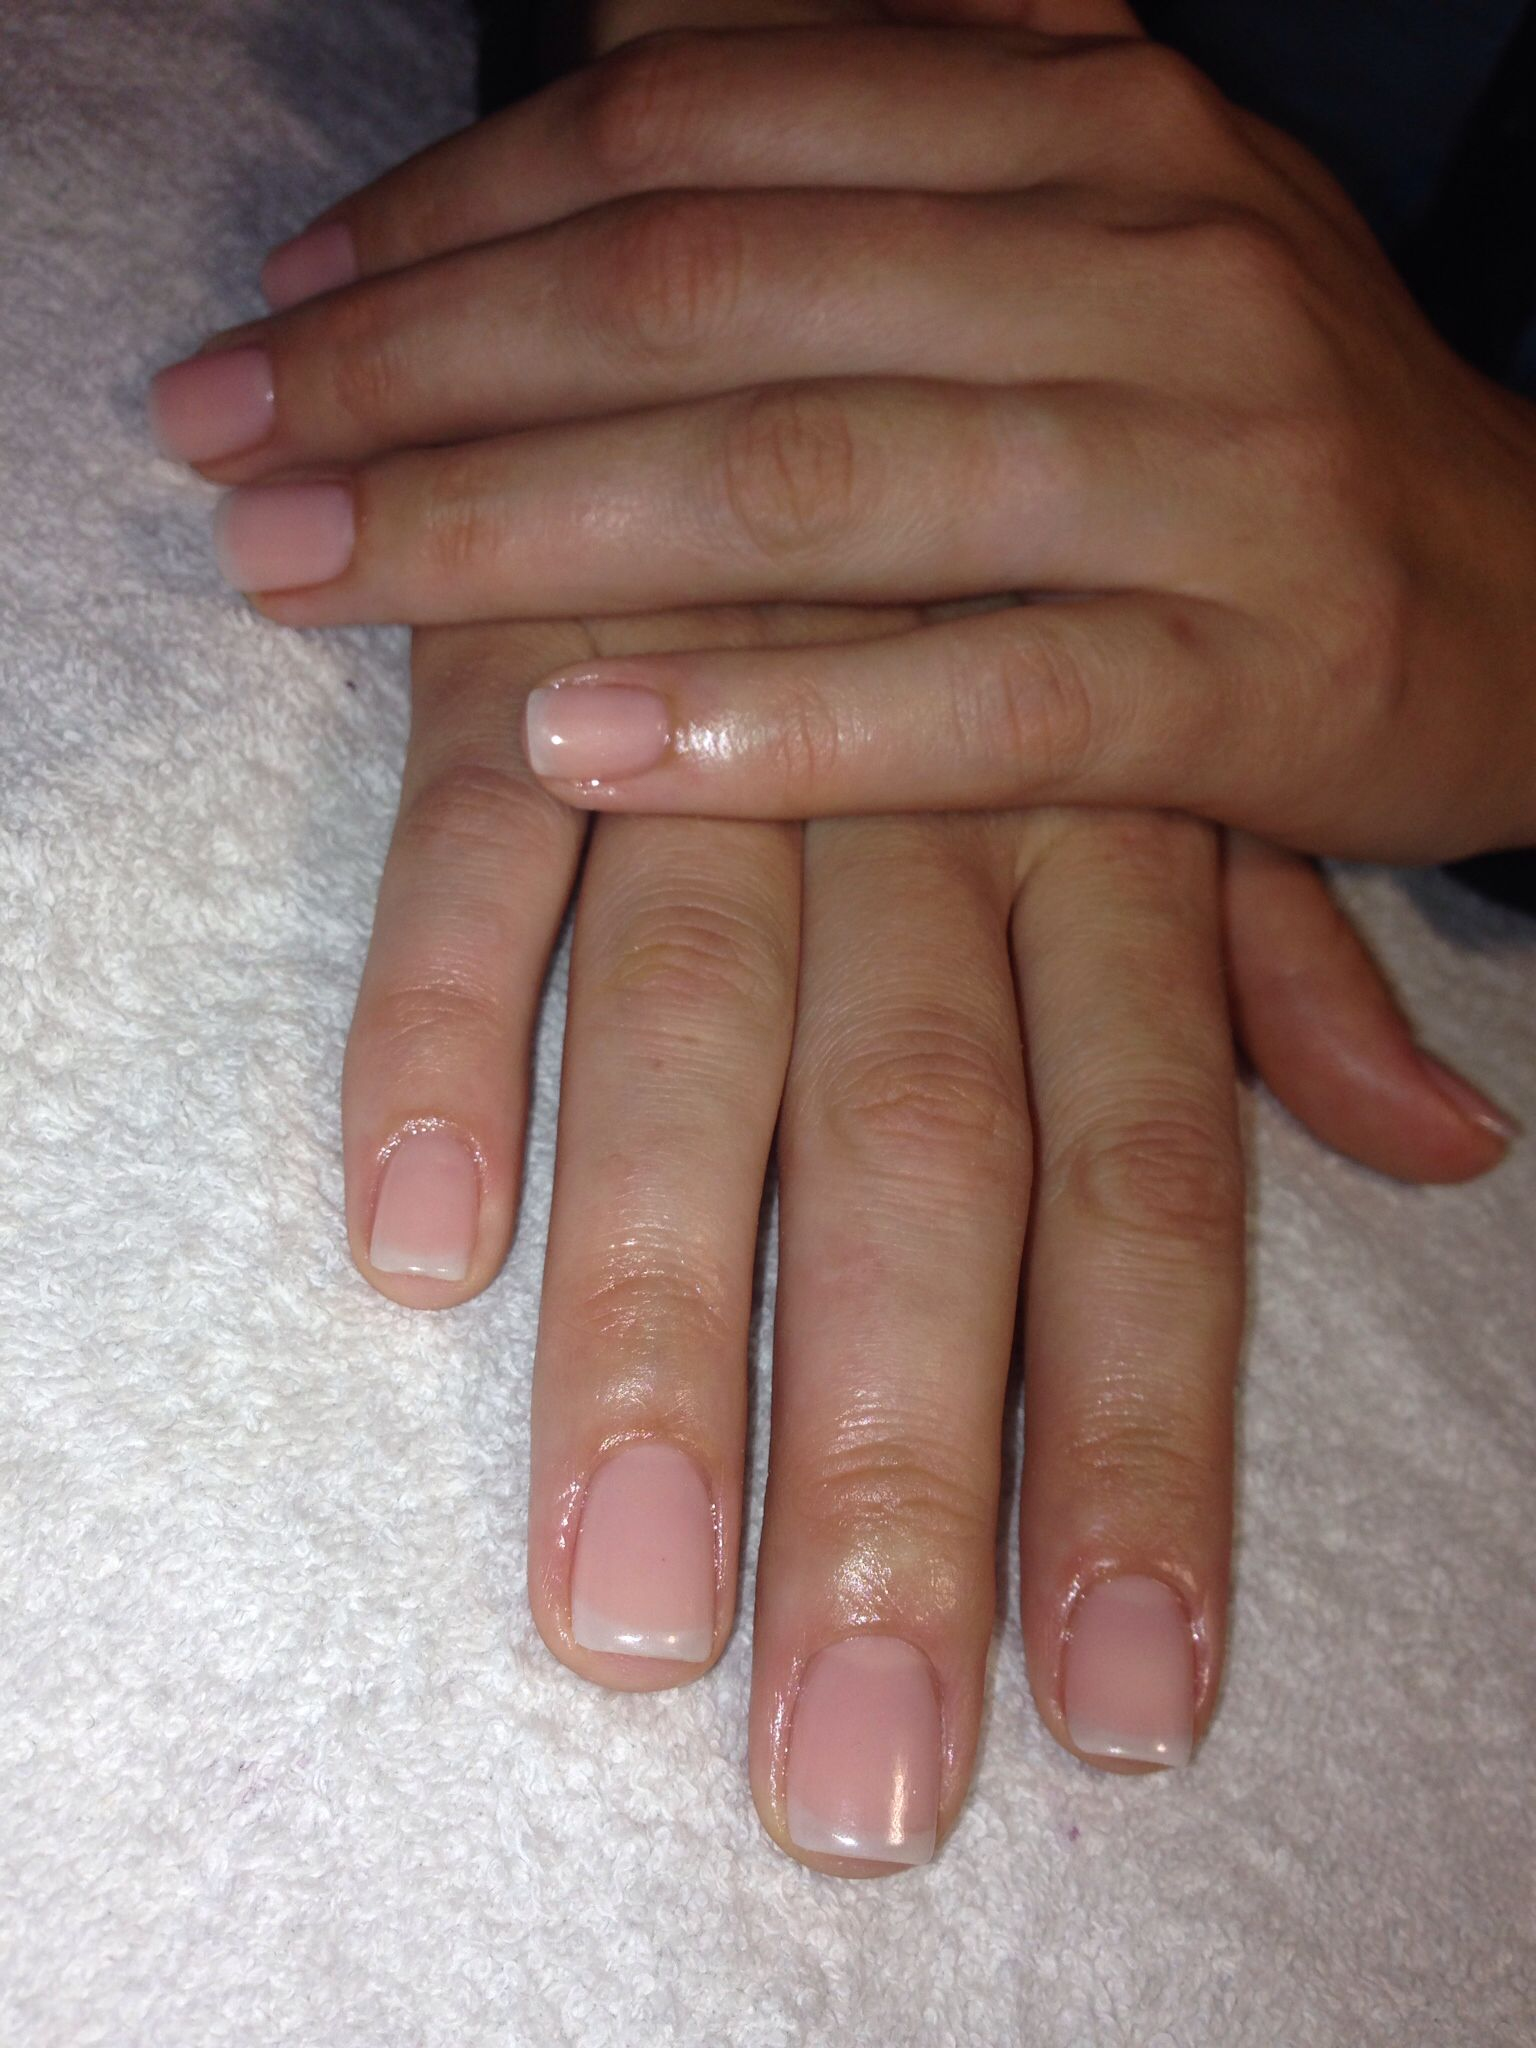 Off White French Acrylic Overlay Clear Nails Natural Short